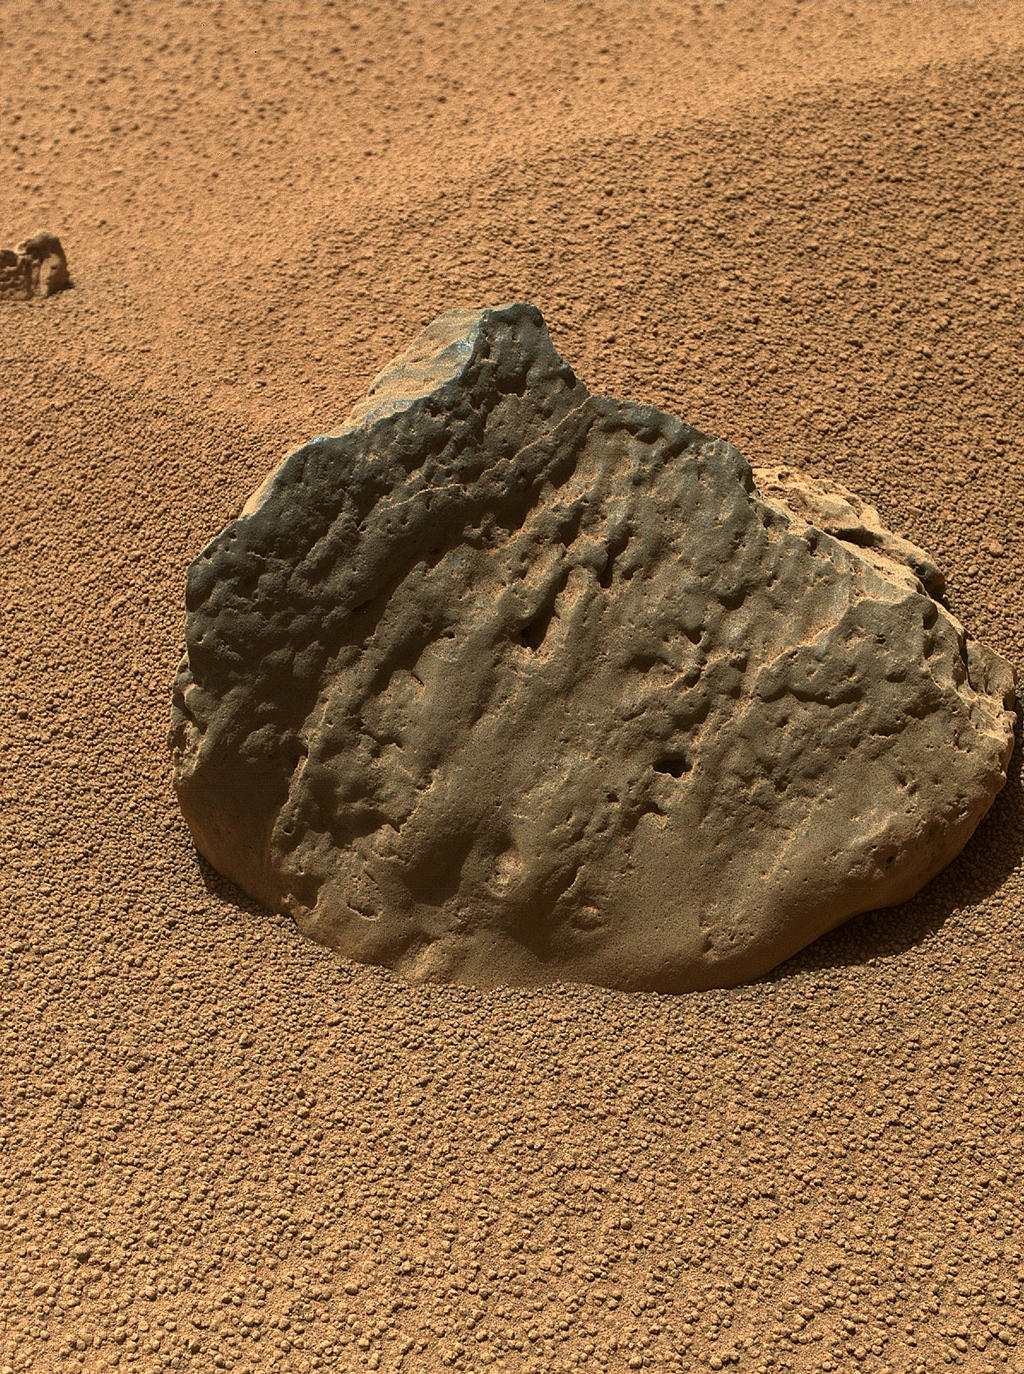 "The Mars Hand Lens Imager (MAHLI) on the arm of NASA's Mars rover Curiosity took this image of a rock called ""Et-Then"" during the mission's 82nd sol, or Martian day (Oct. 29, 2012.)"